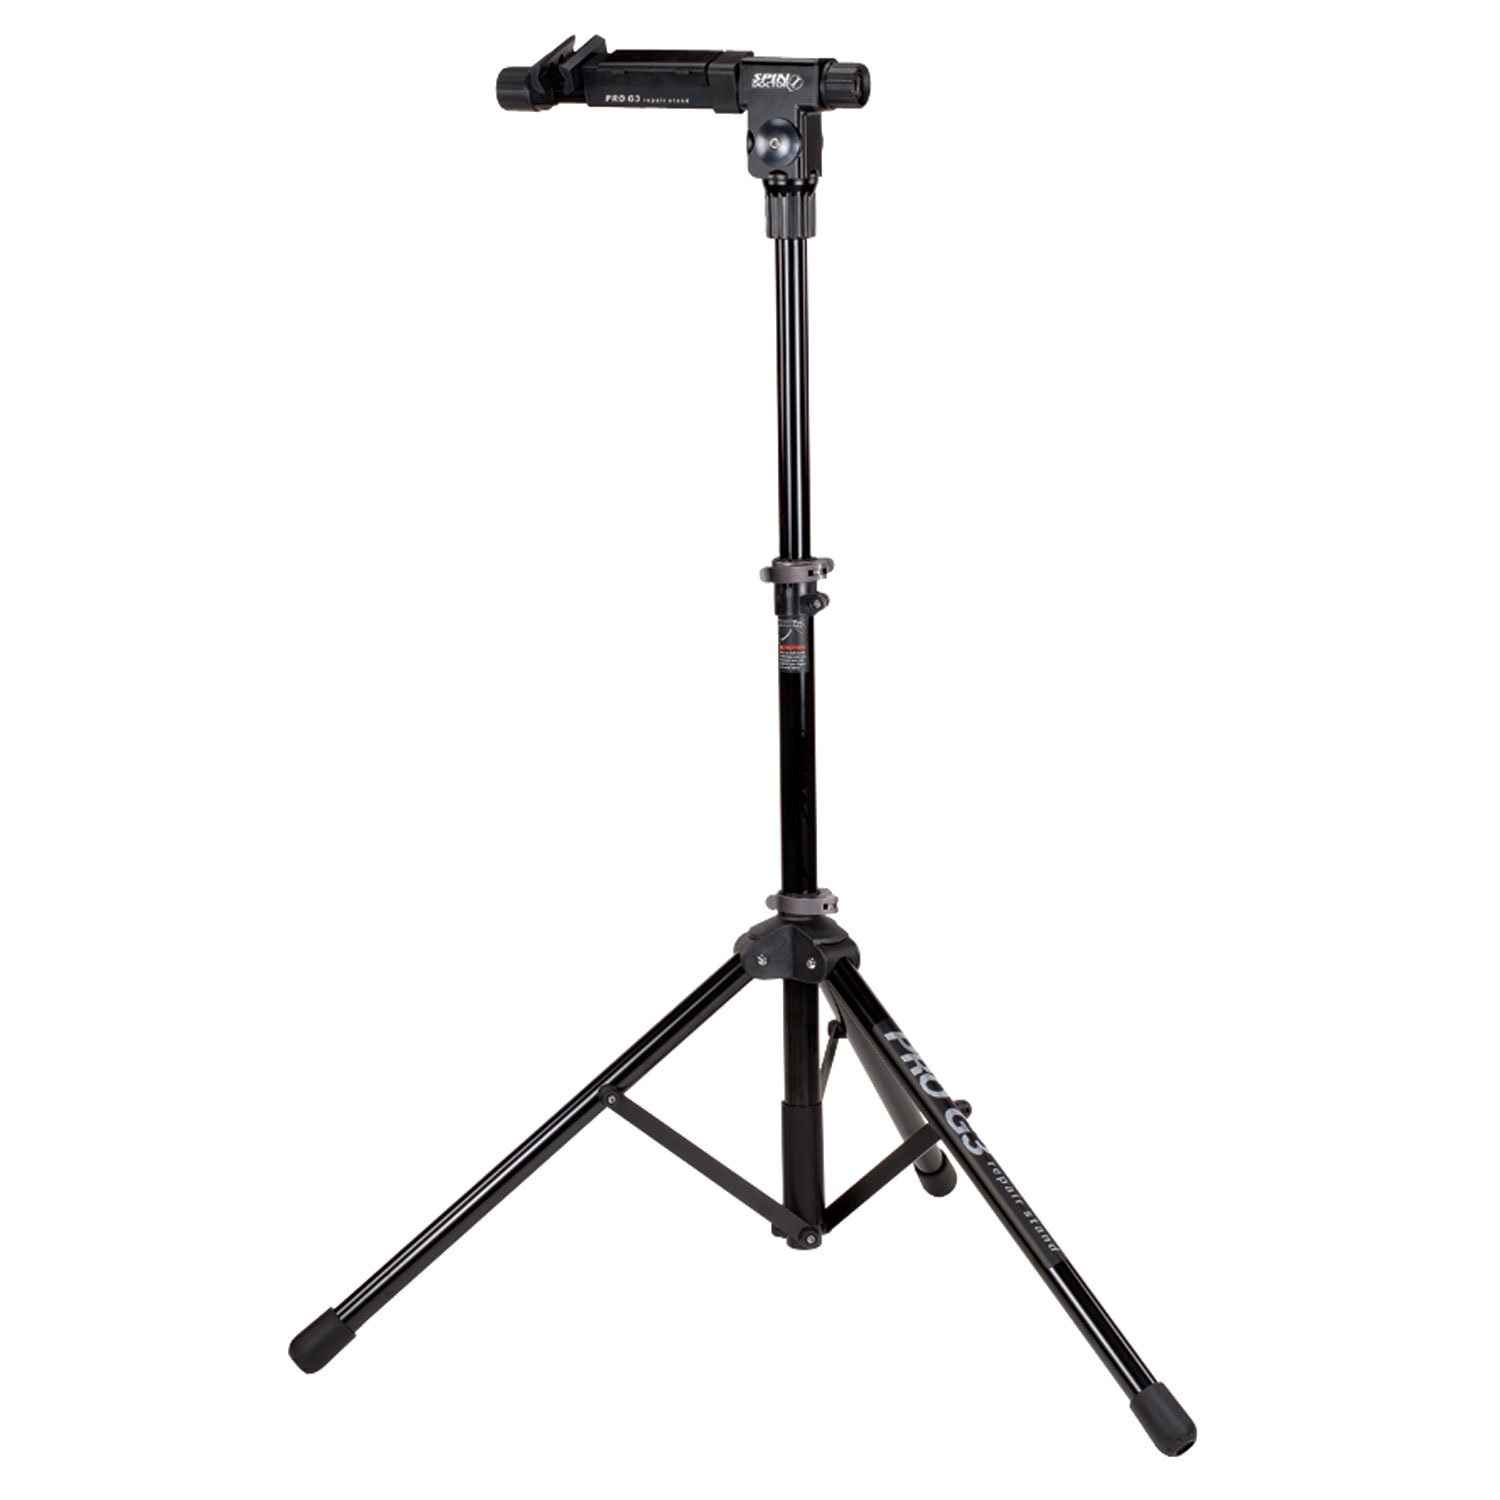 Spin Doctor Pro G3 Bicycle Work Stand by Spin Doctor